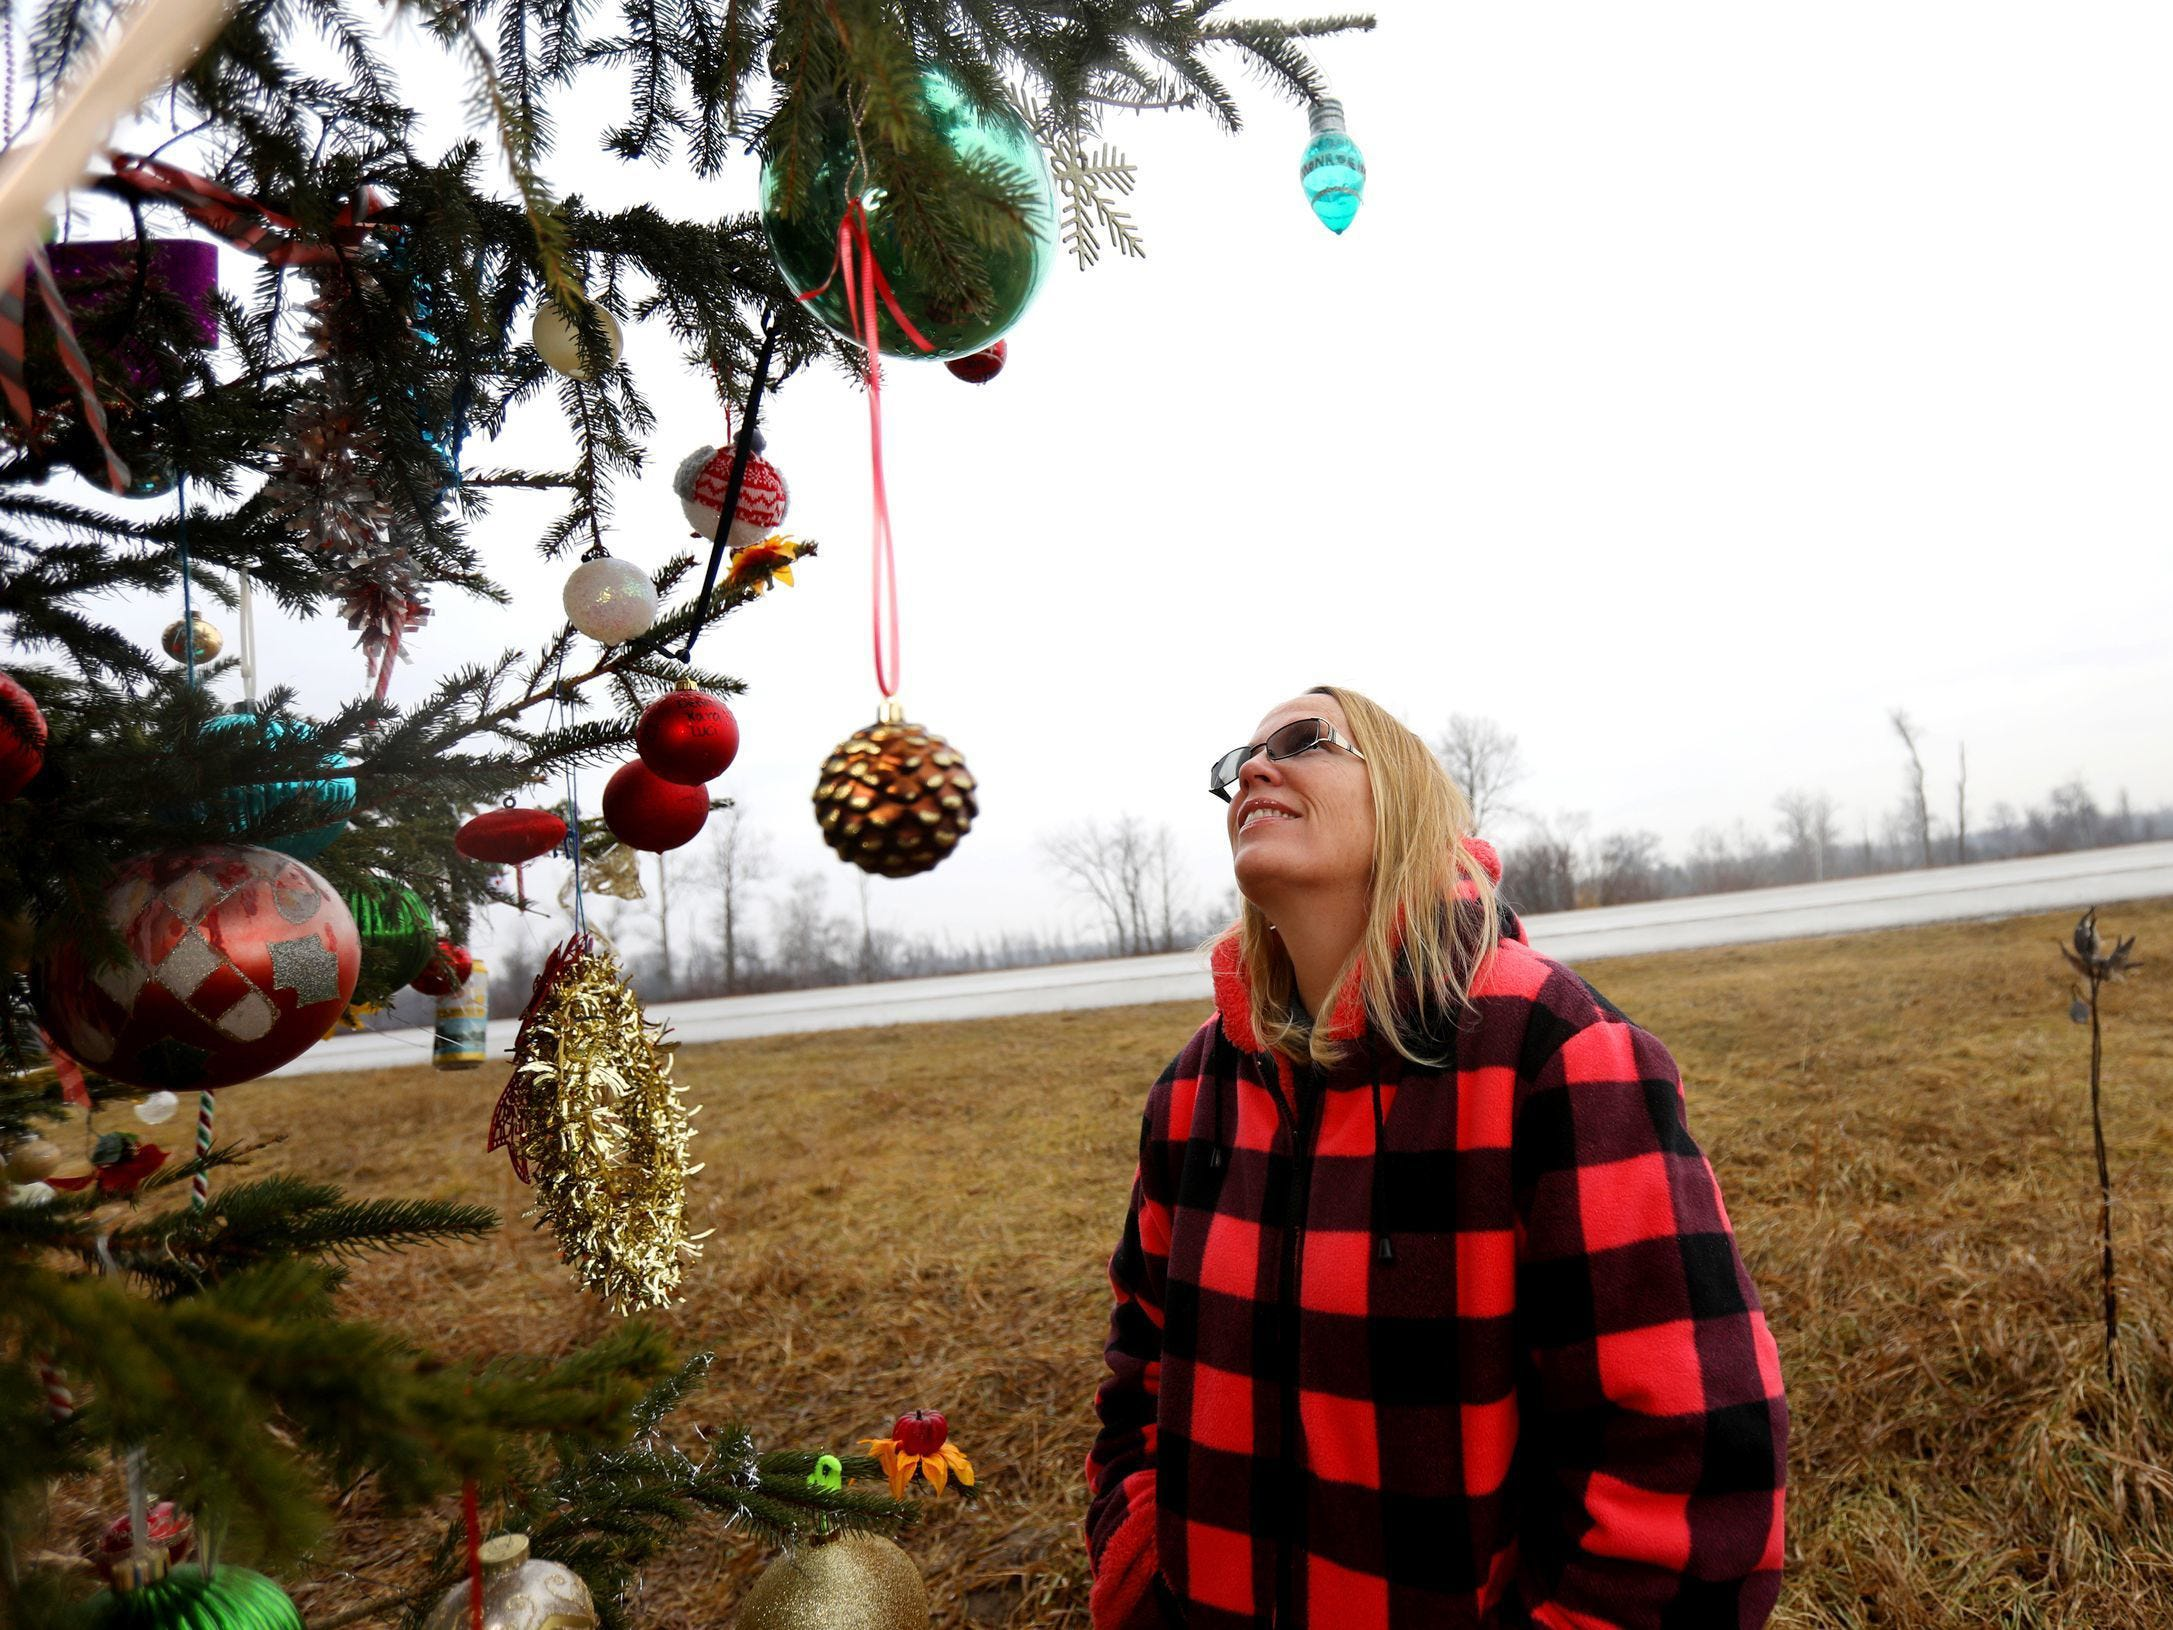 Kathy Porter looks at some of the new Christmas ornaments added since she last visited the Australian pine tree planted at the site of her son Jason's death, who was killed by a drunk driver 20 years ago. People driving by started adding Christmas ornaments throughout the years.